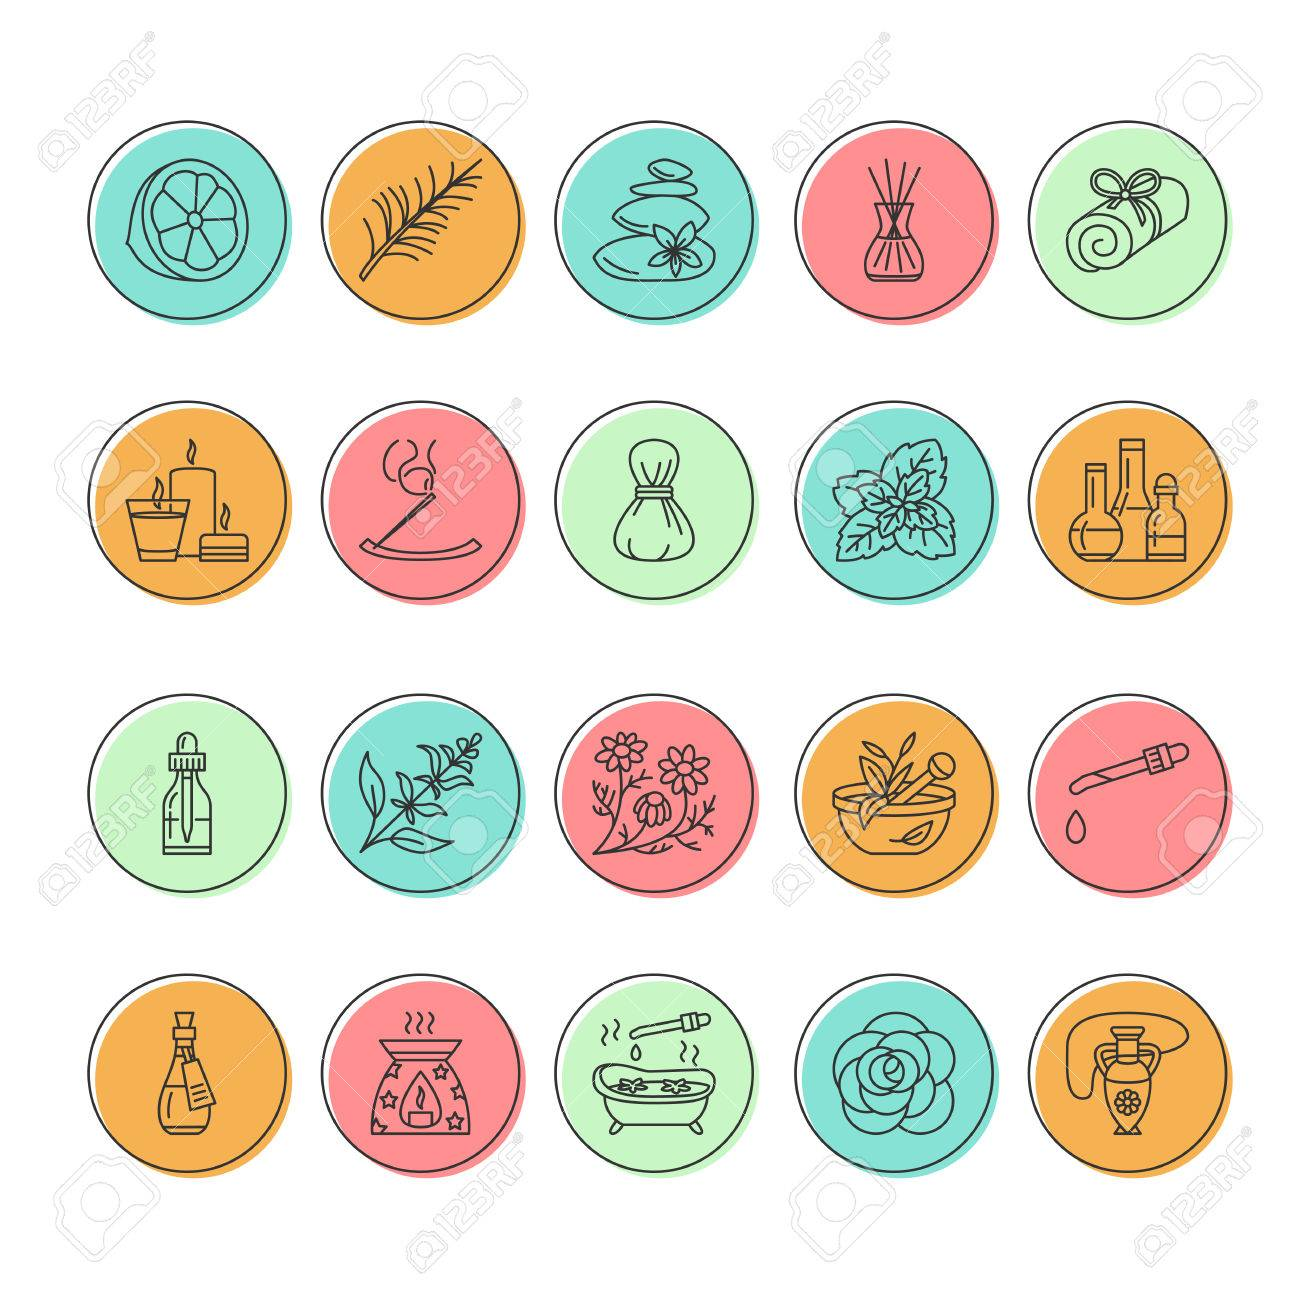 Modern vector line icons of aromatherapy and essential oils. Elements - aromatherapy diffuser, oil burner, spa candles, incense sticks. Linear pictogram with editable strokes for aromatherapy salon. - 66482718